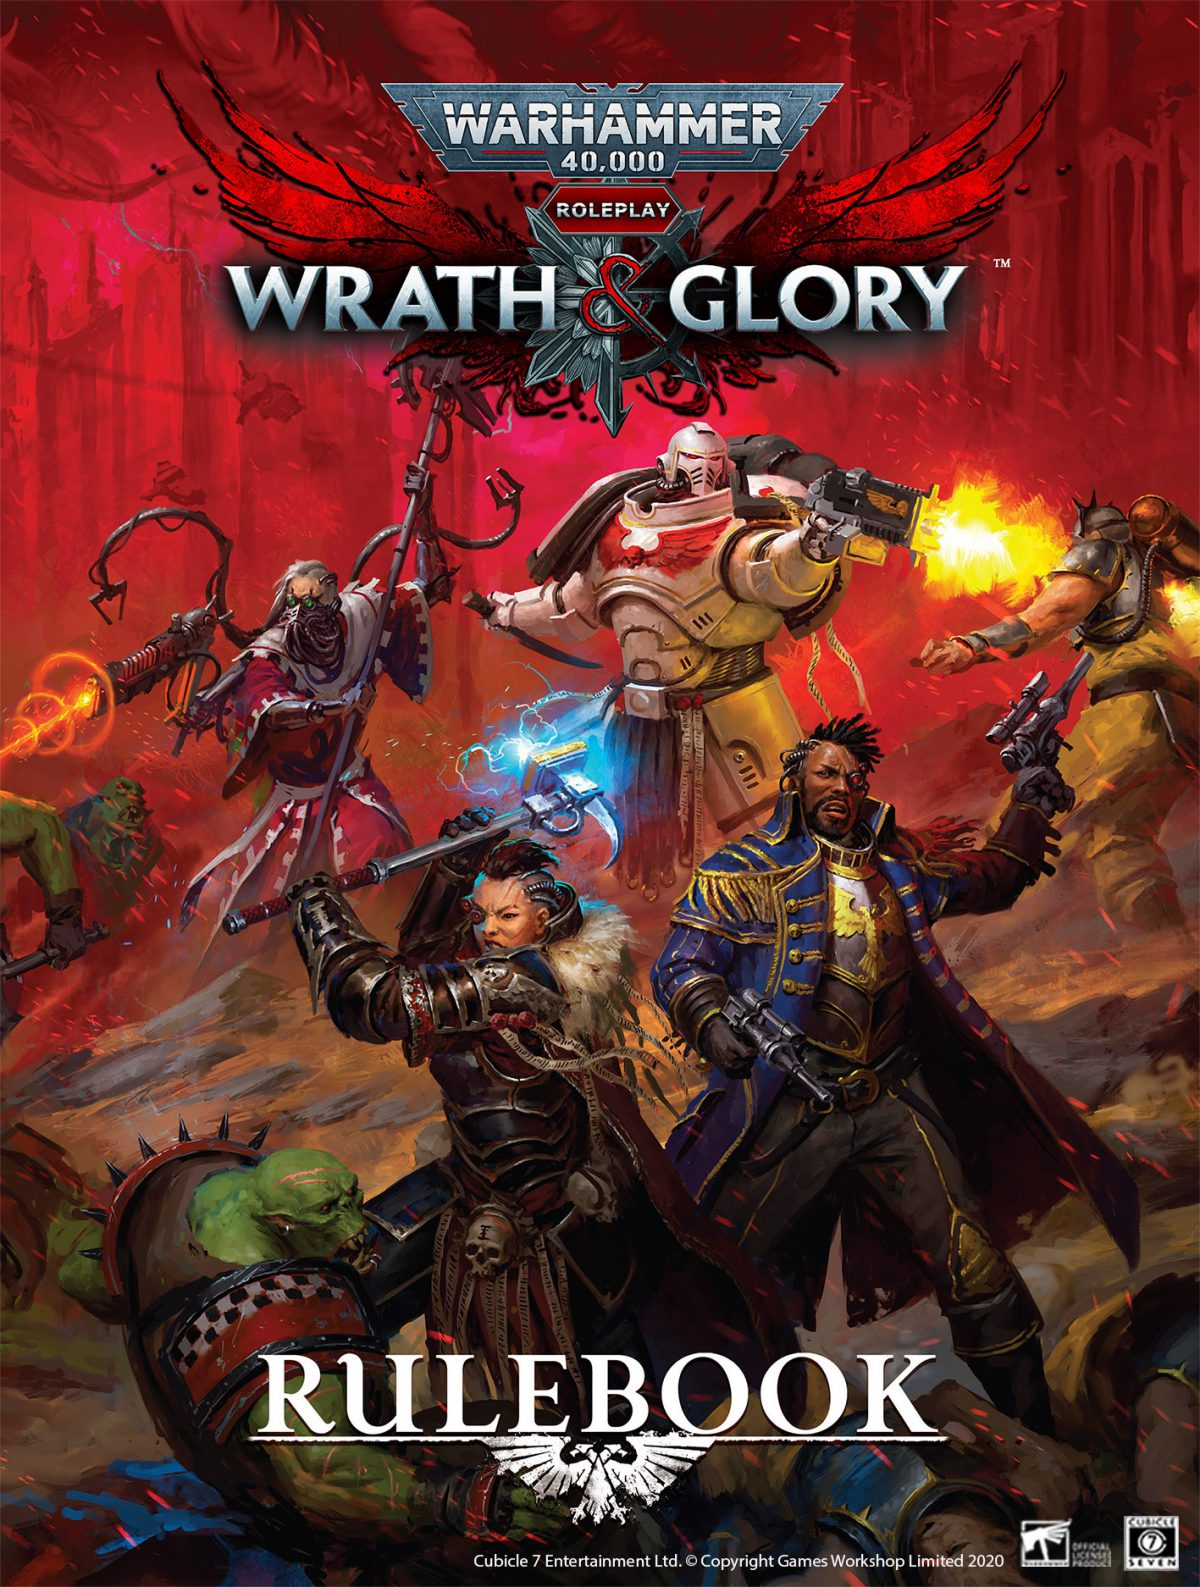 What is Wrath & Glory?